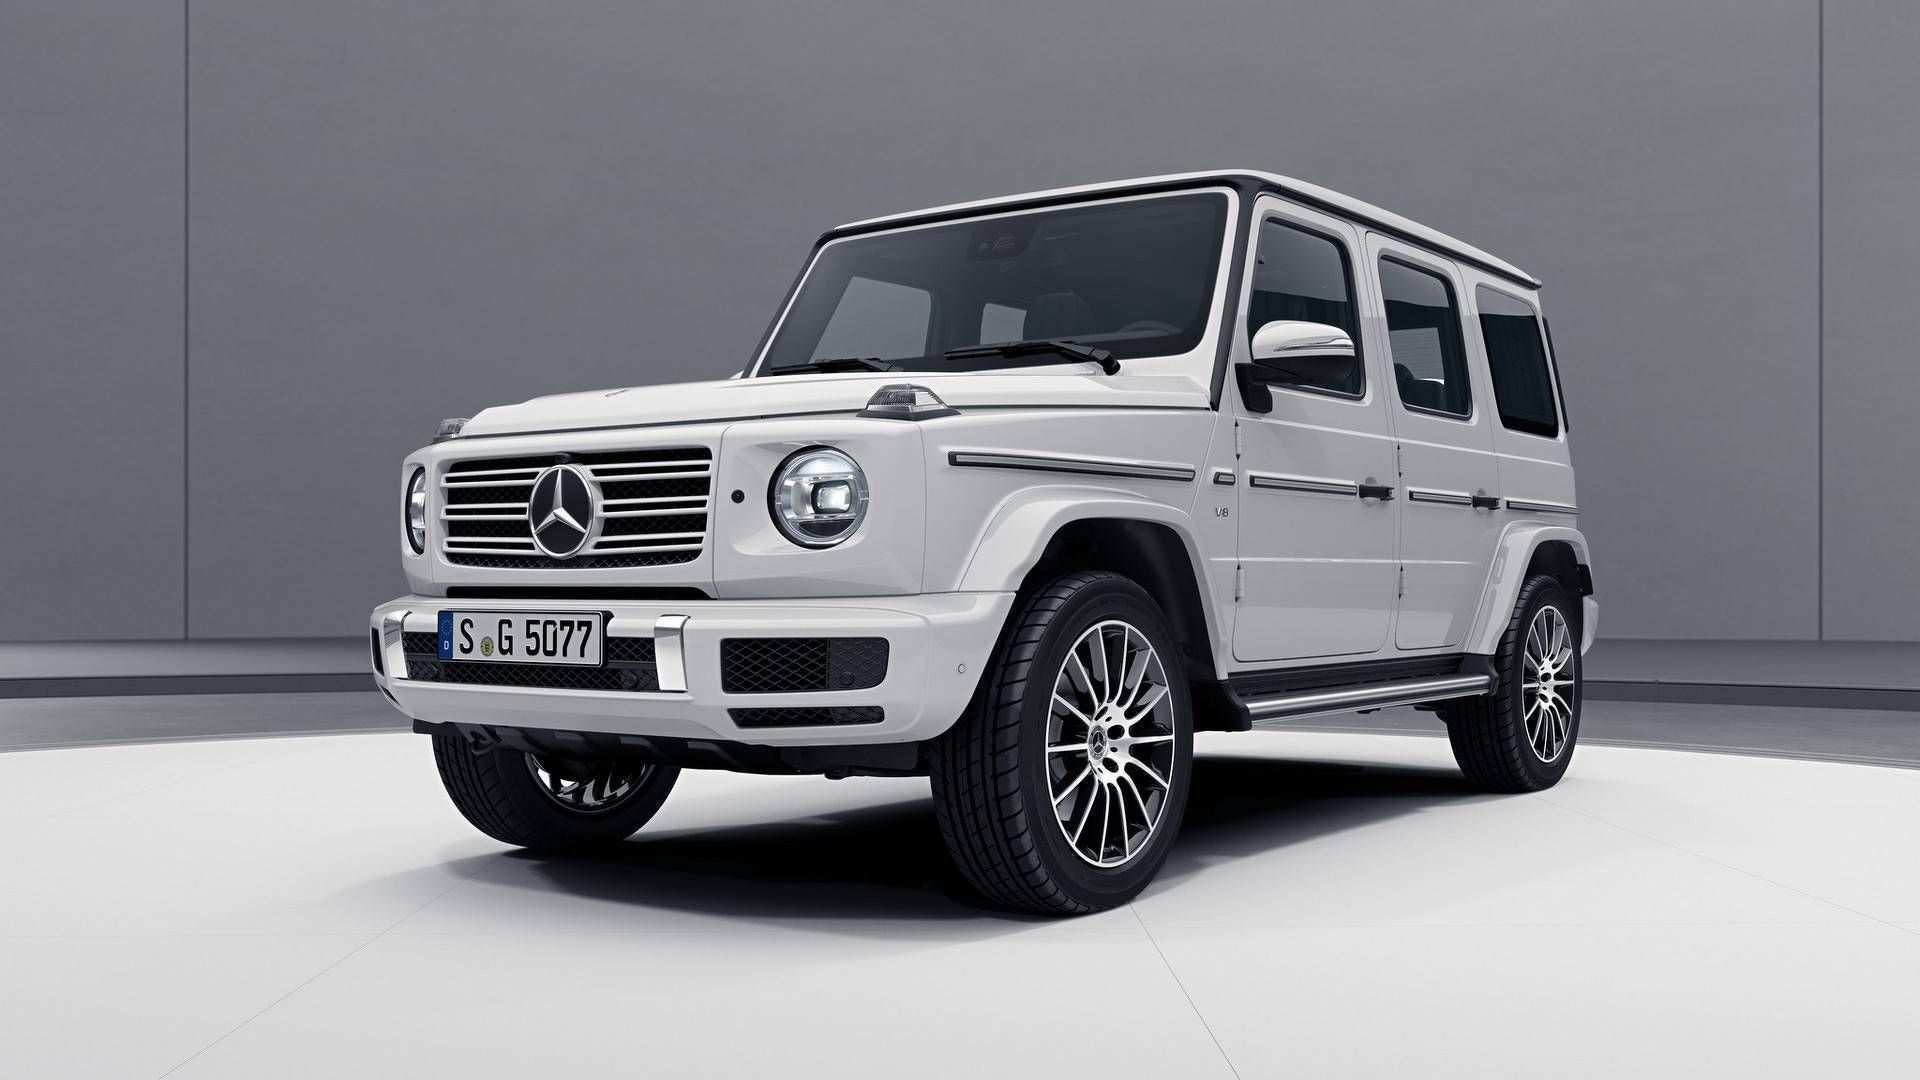 74 New Mercedes G 2020 Exterior Price and Review by Mercedes G 2020 Exterior